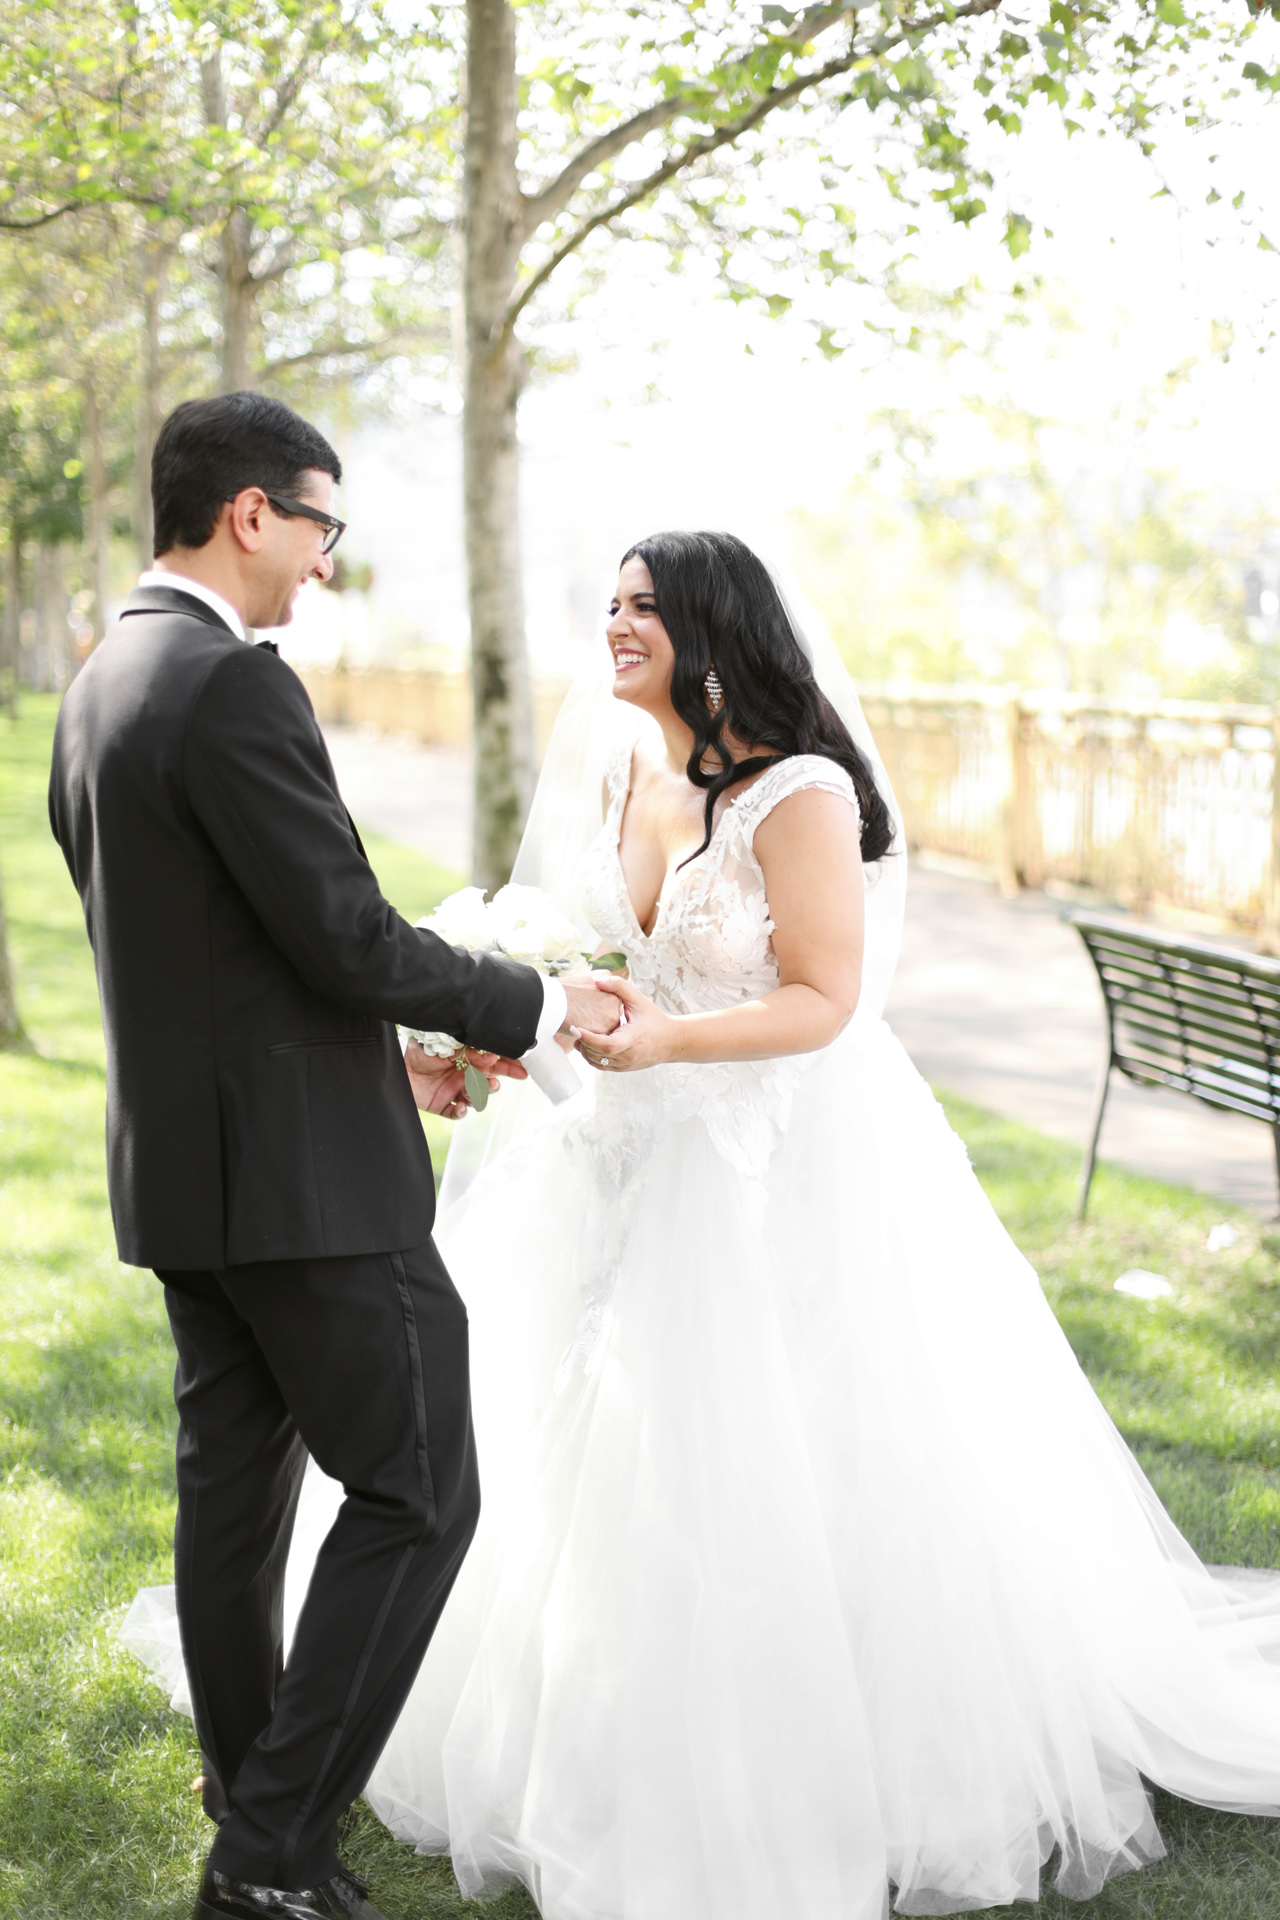 A bride and groom share a happy moment in the park